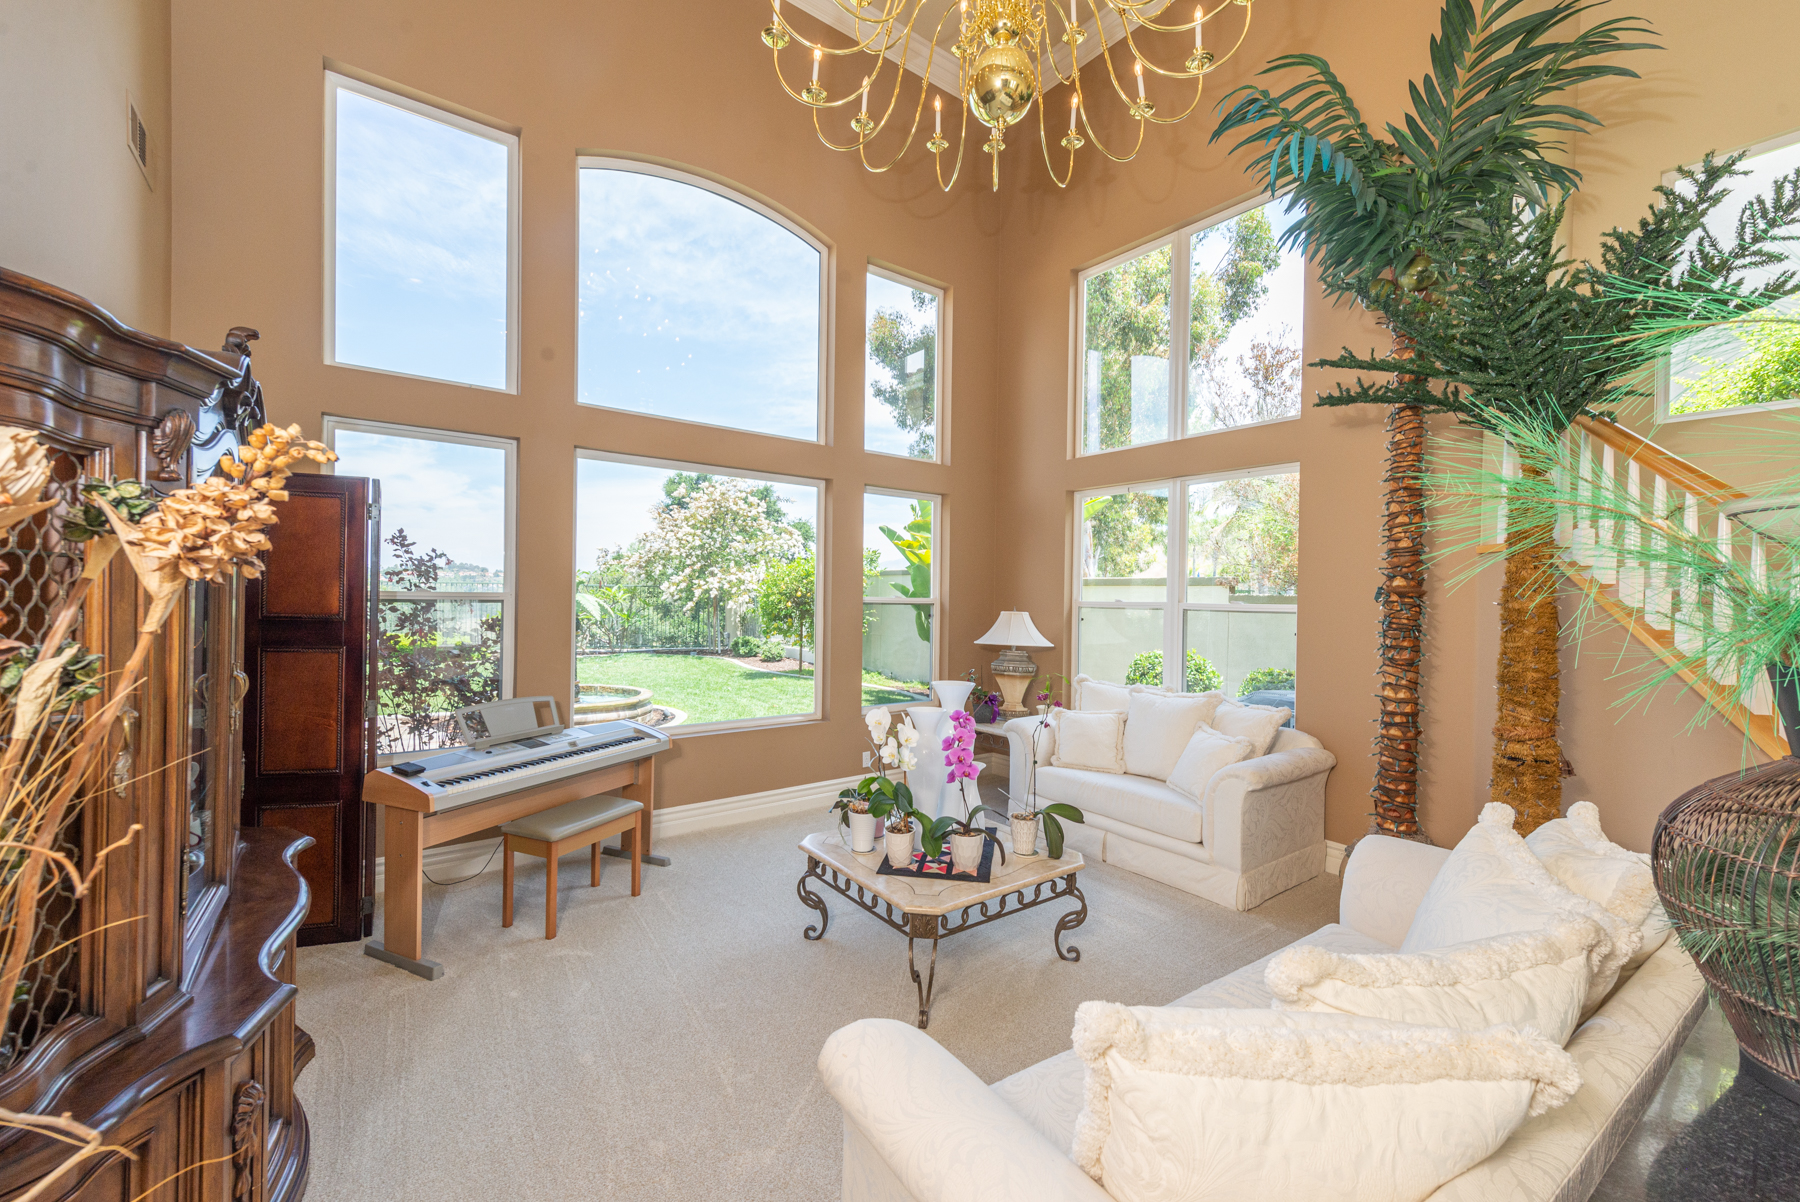 Real Estate Photography by John D. Russell